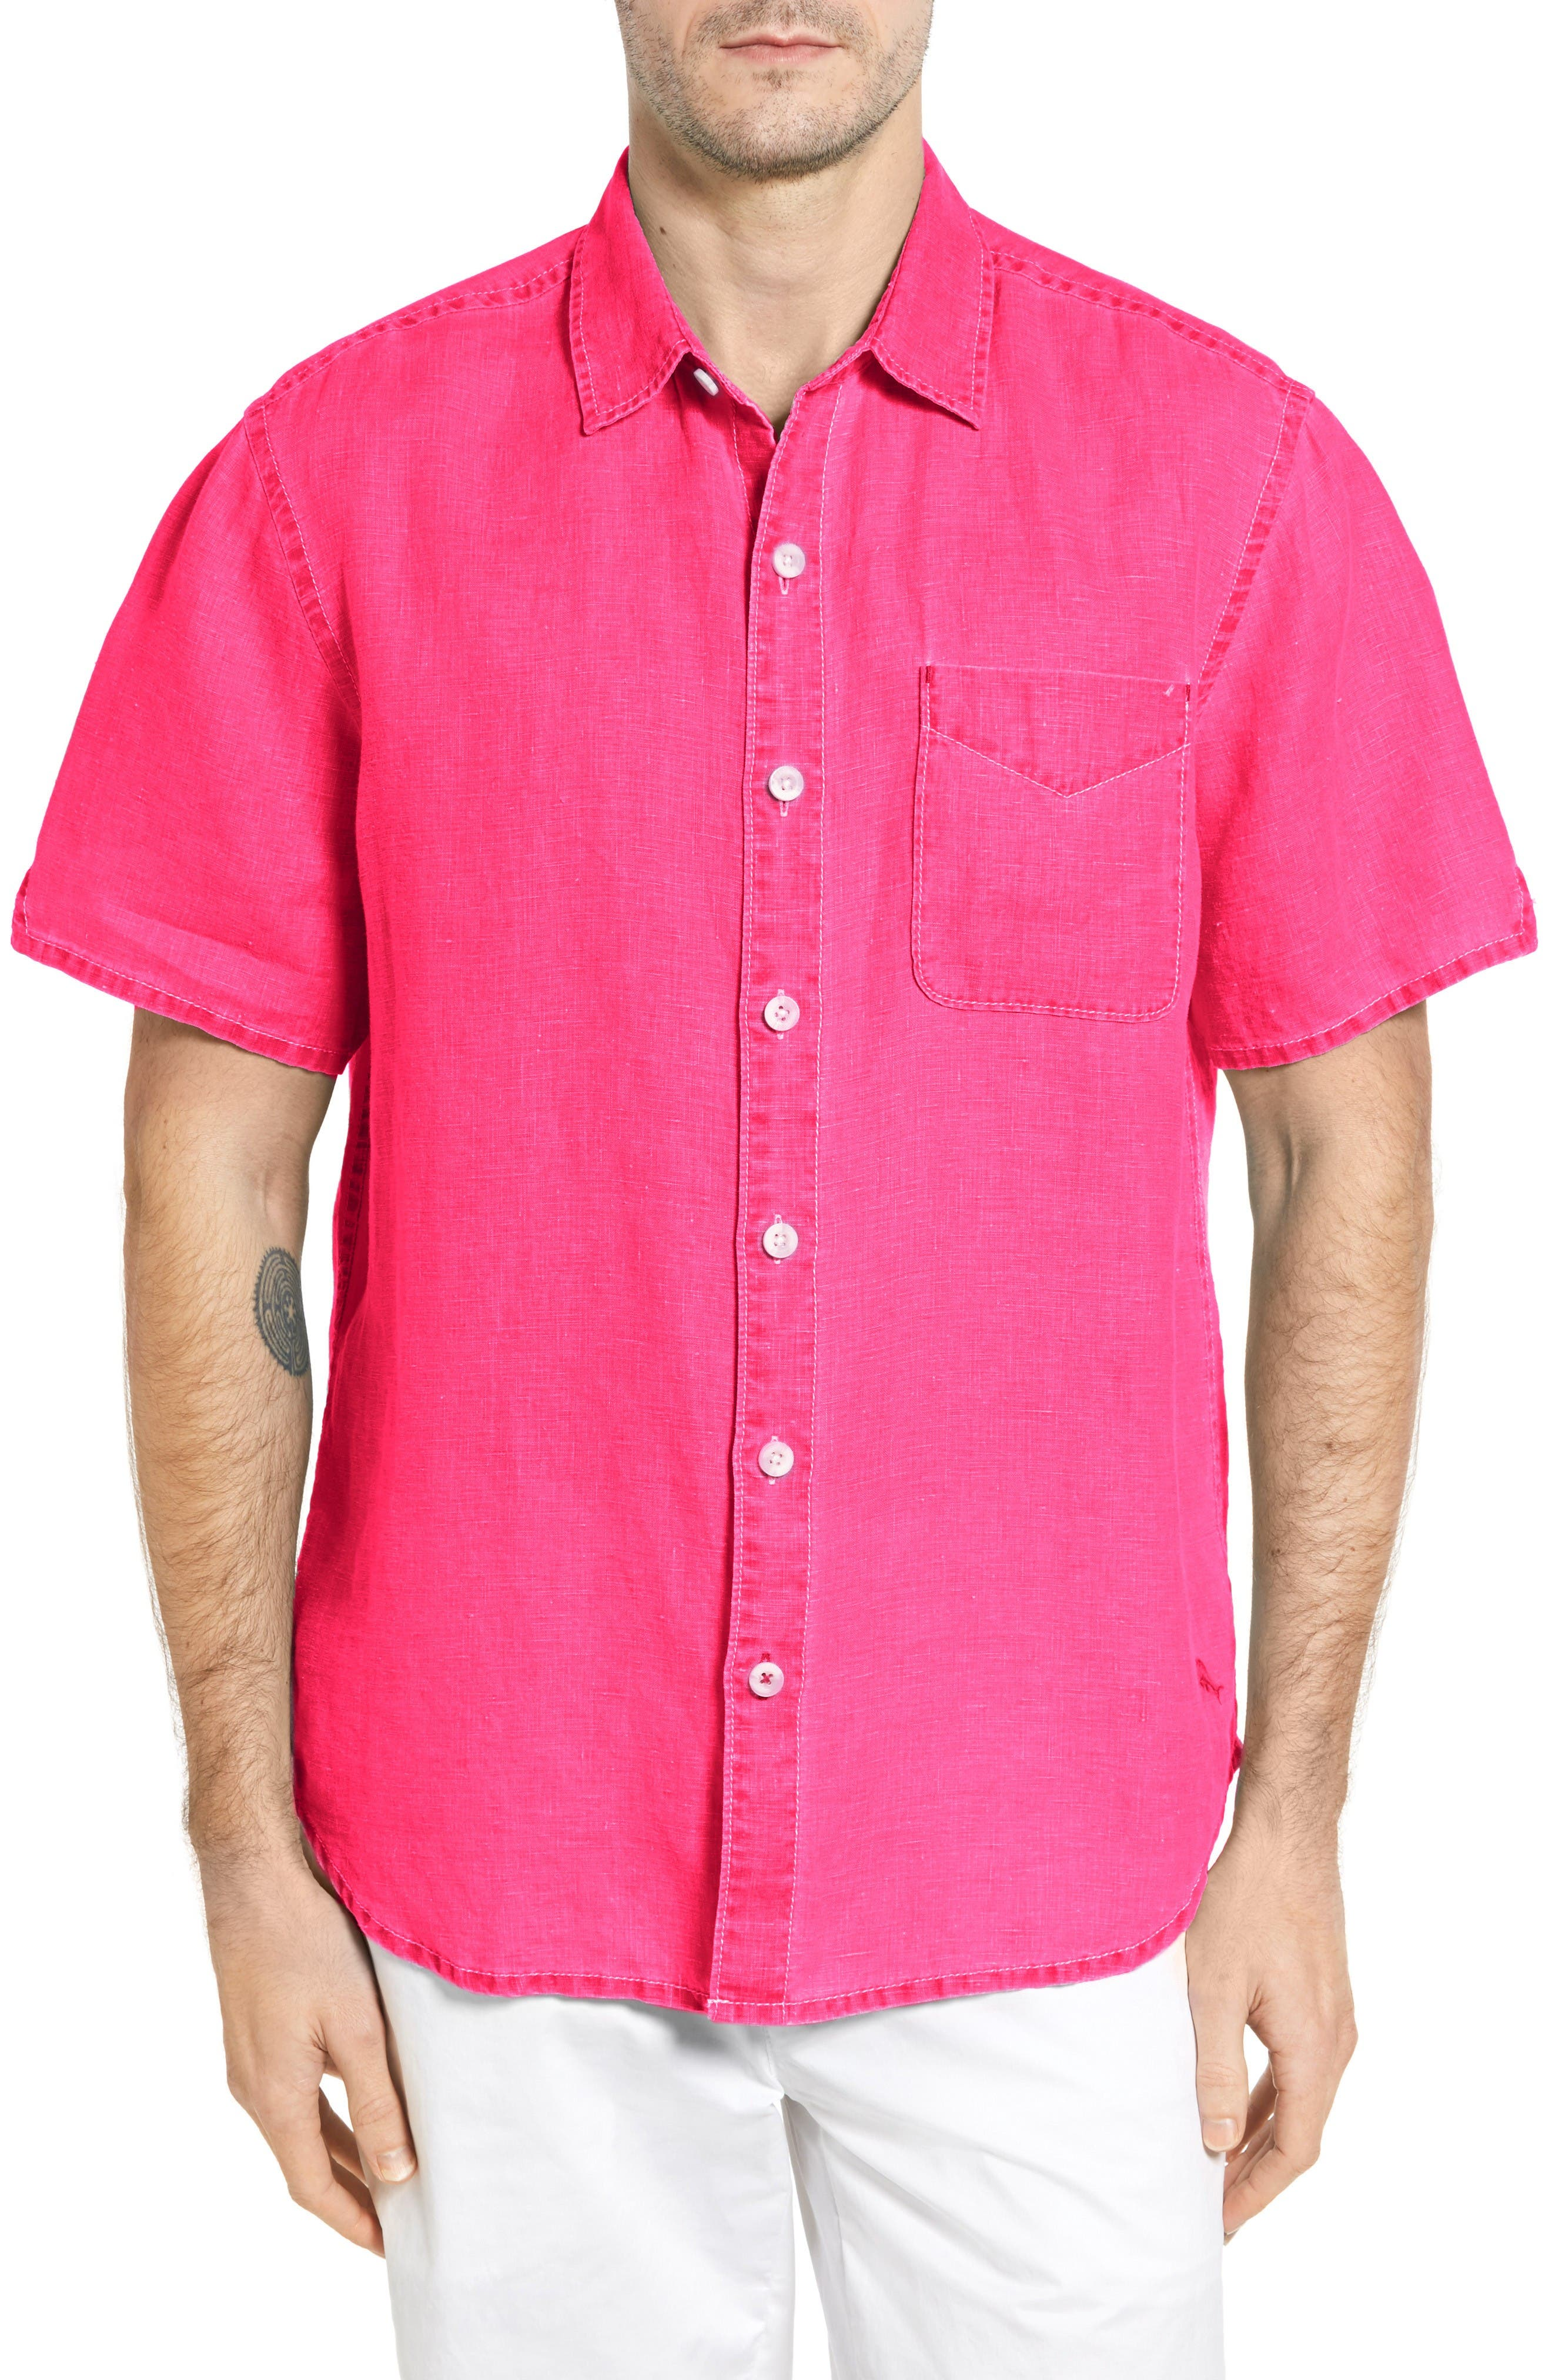 Alternate Image 1 Selected - Tommy Bahama 'Sea Glass Breezer' Original Fit Short Sleeve Linen Shirt